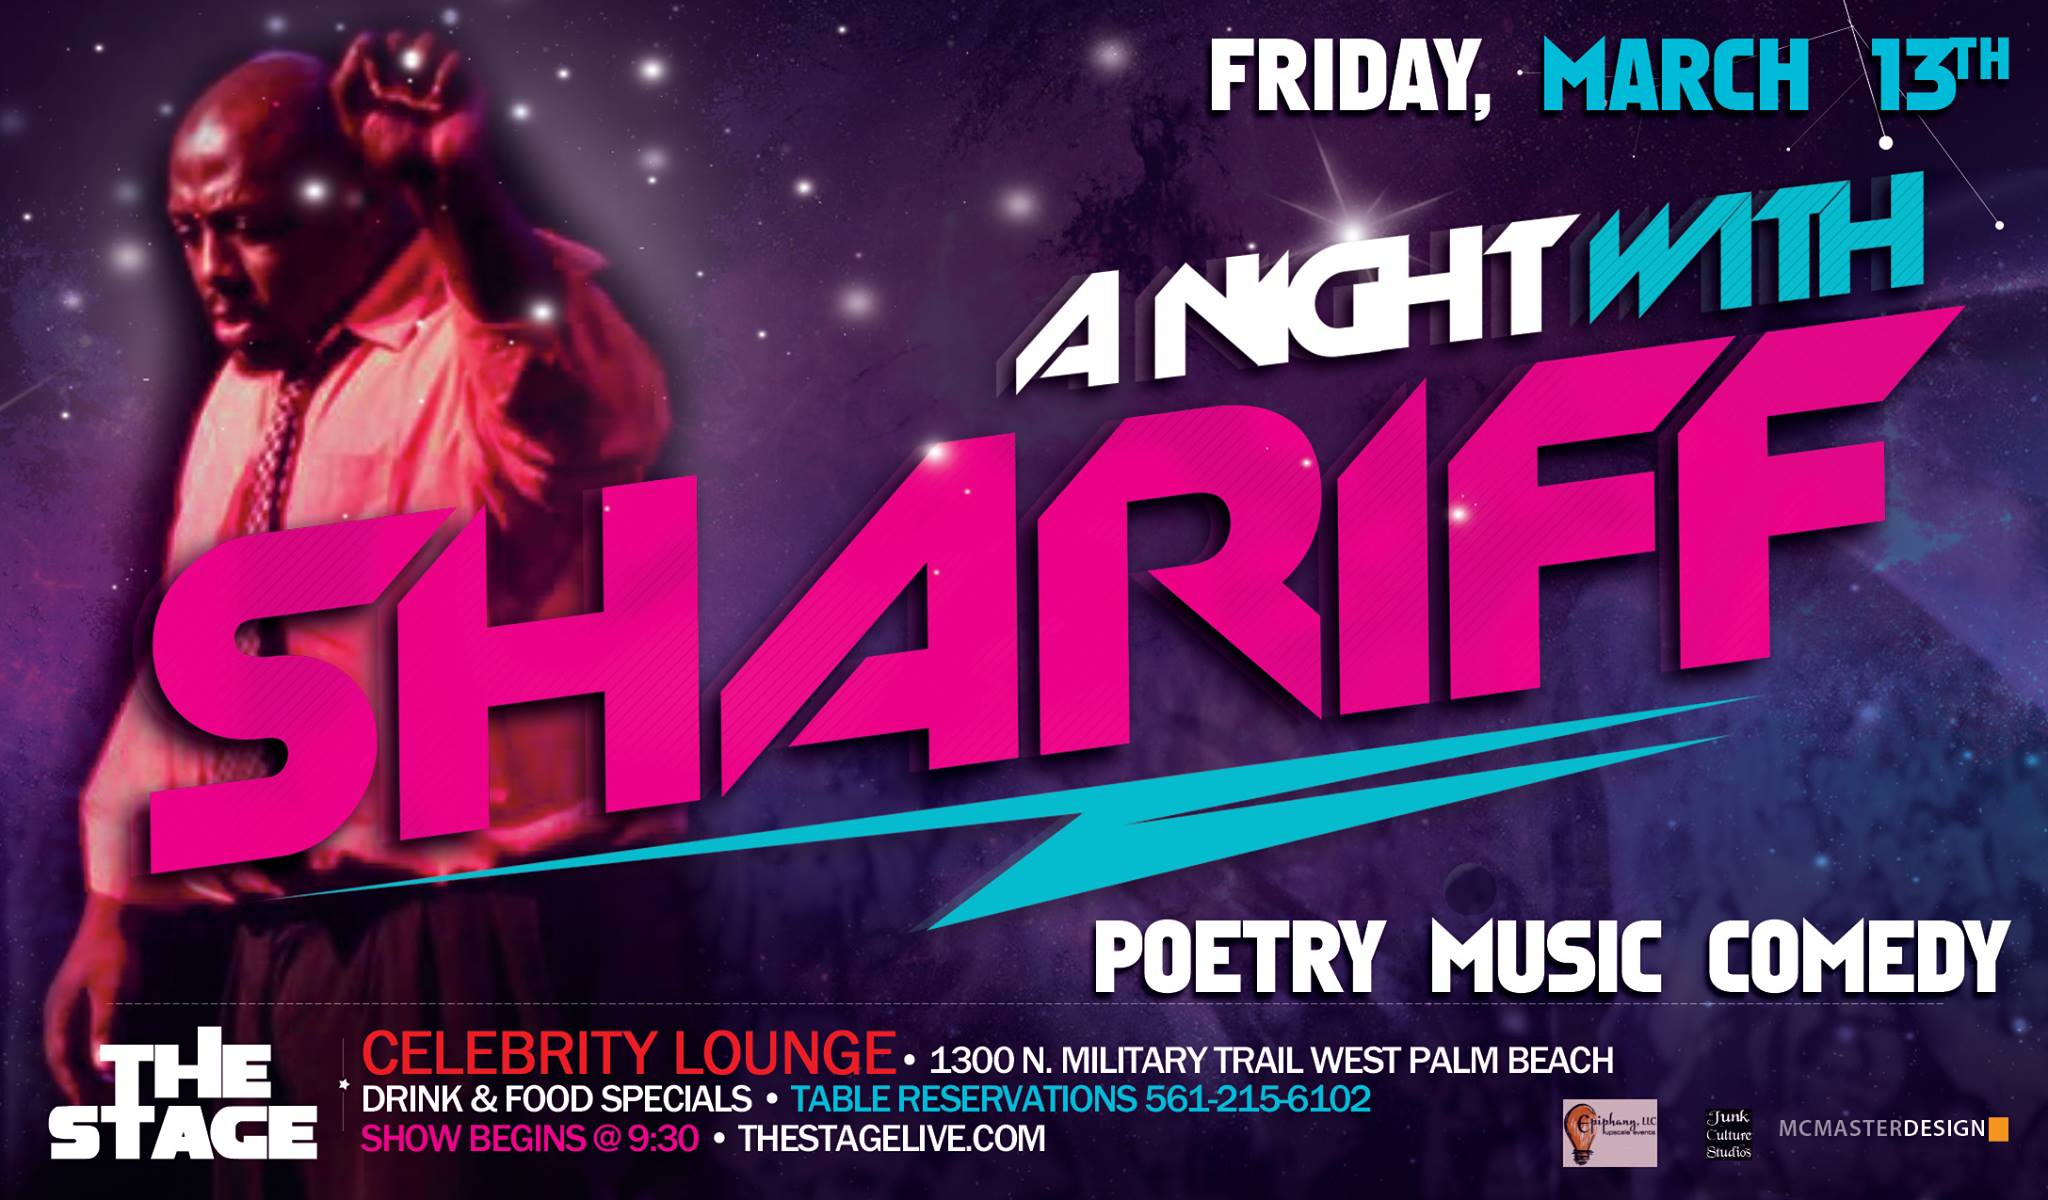 THE STAGE Presents...A Night with Shariff